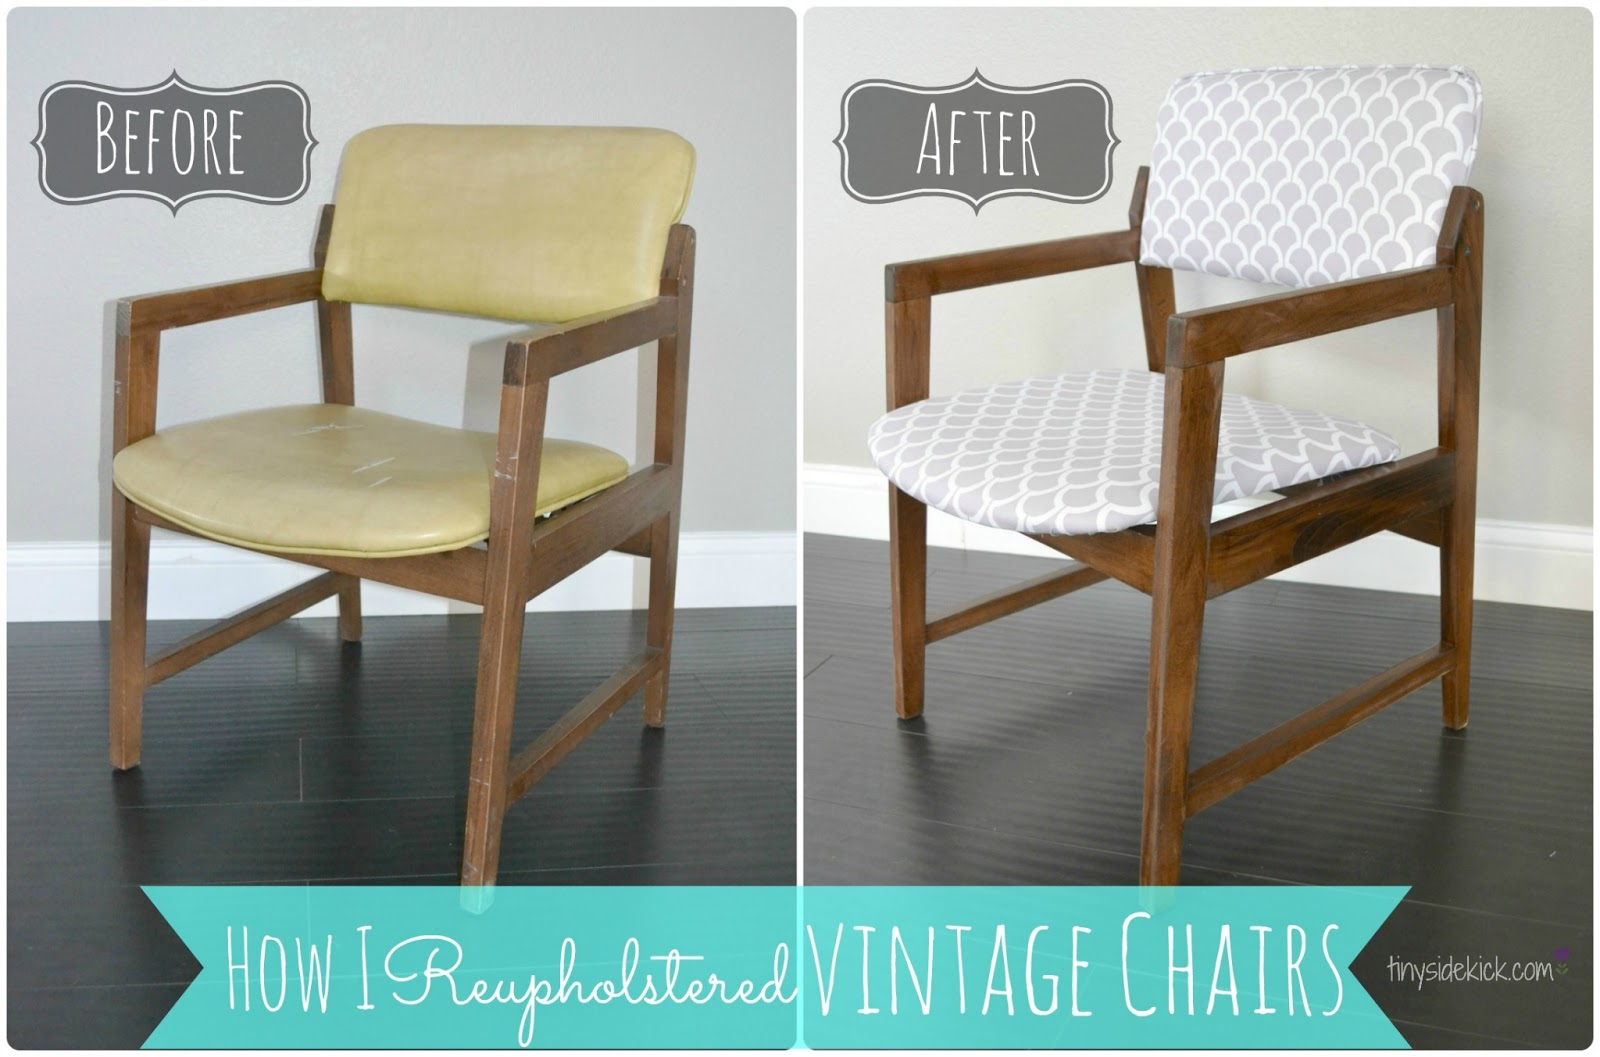 reupholster dining chairs terry cloth lounge chair covers target reupholstering vintage tiny sidekick